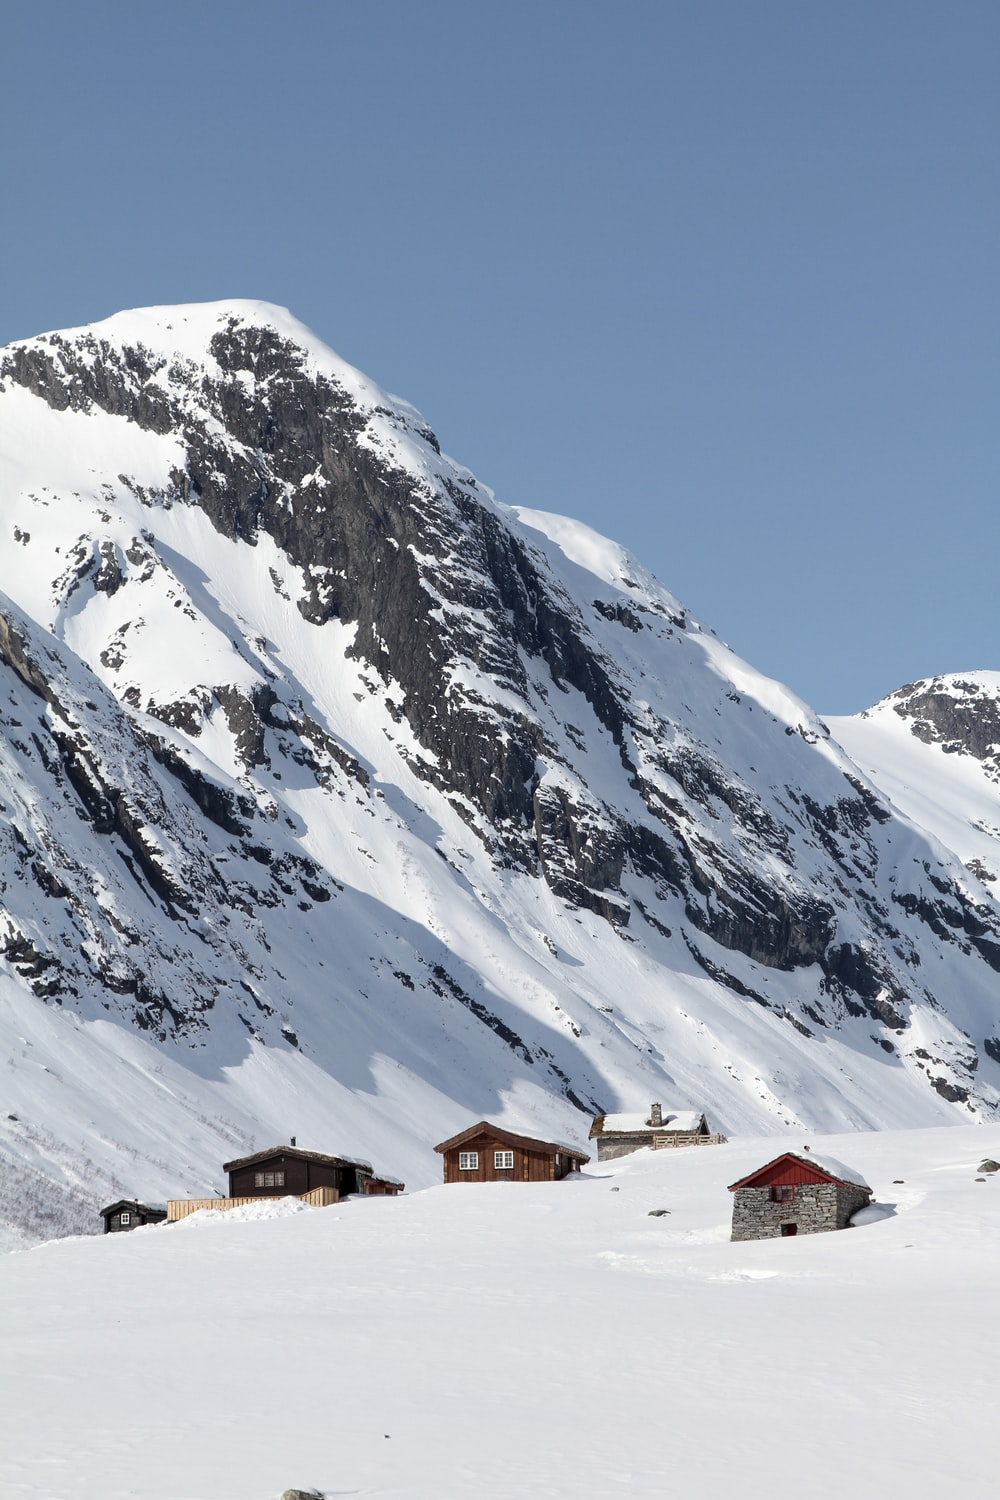 houses near mountain coated with snow